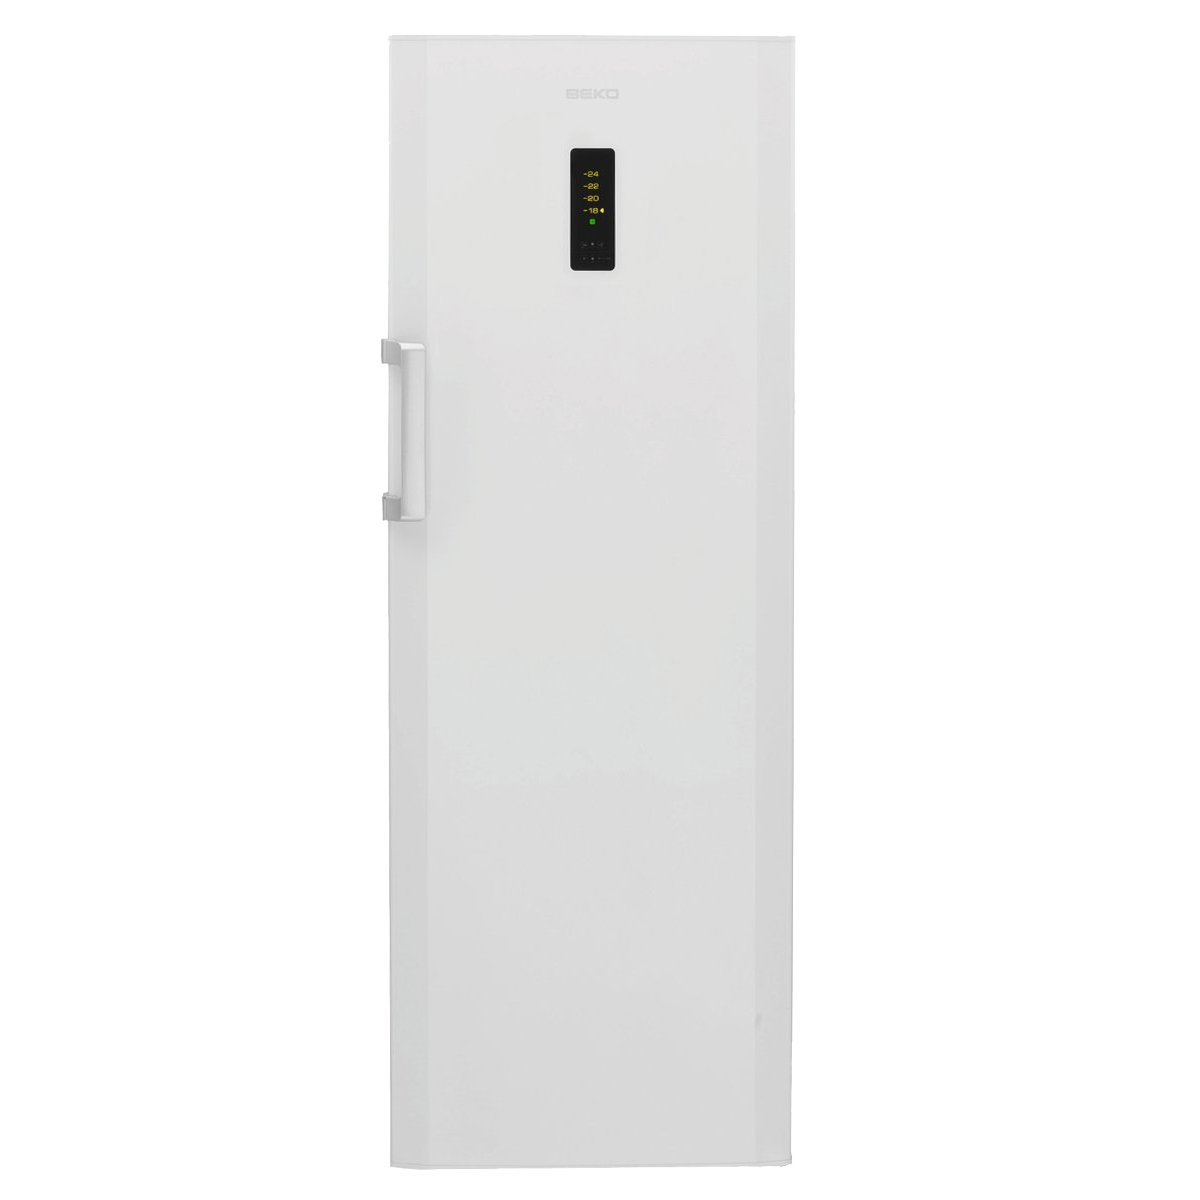 Beko FN126420 Independiente Vertical 227L A+ Blanco - Congelador ...